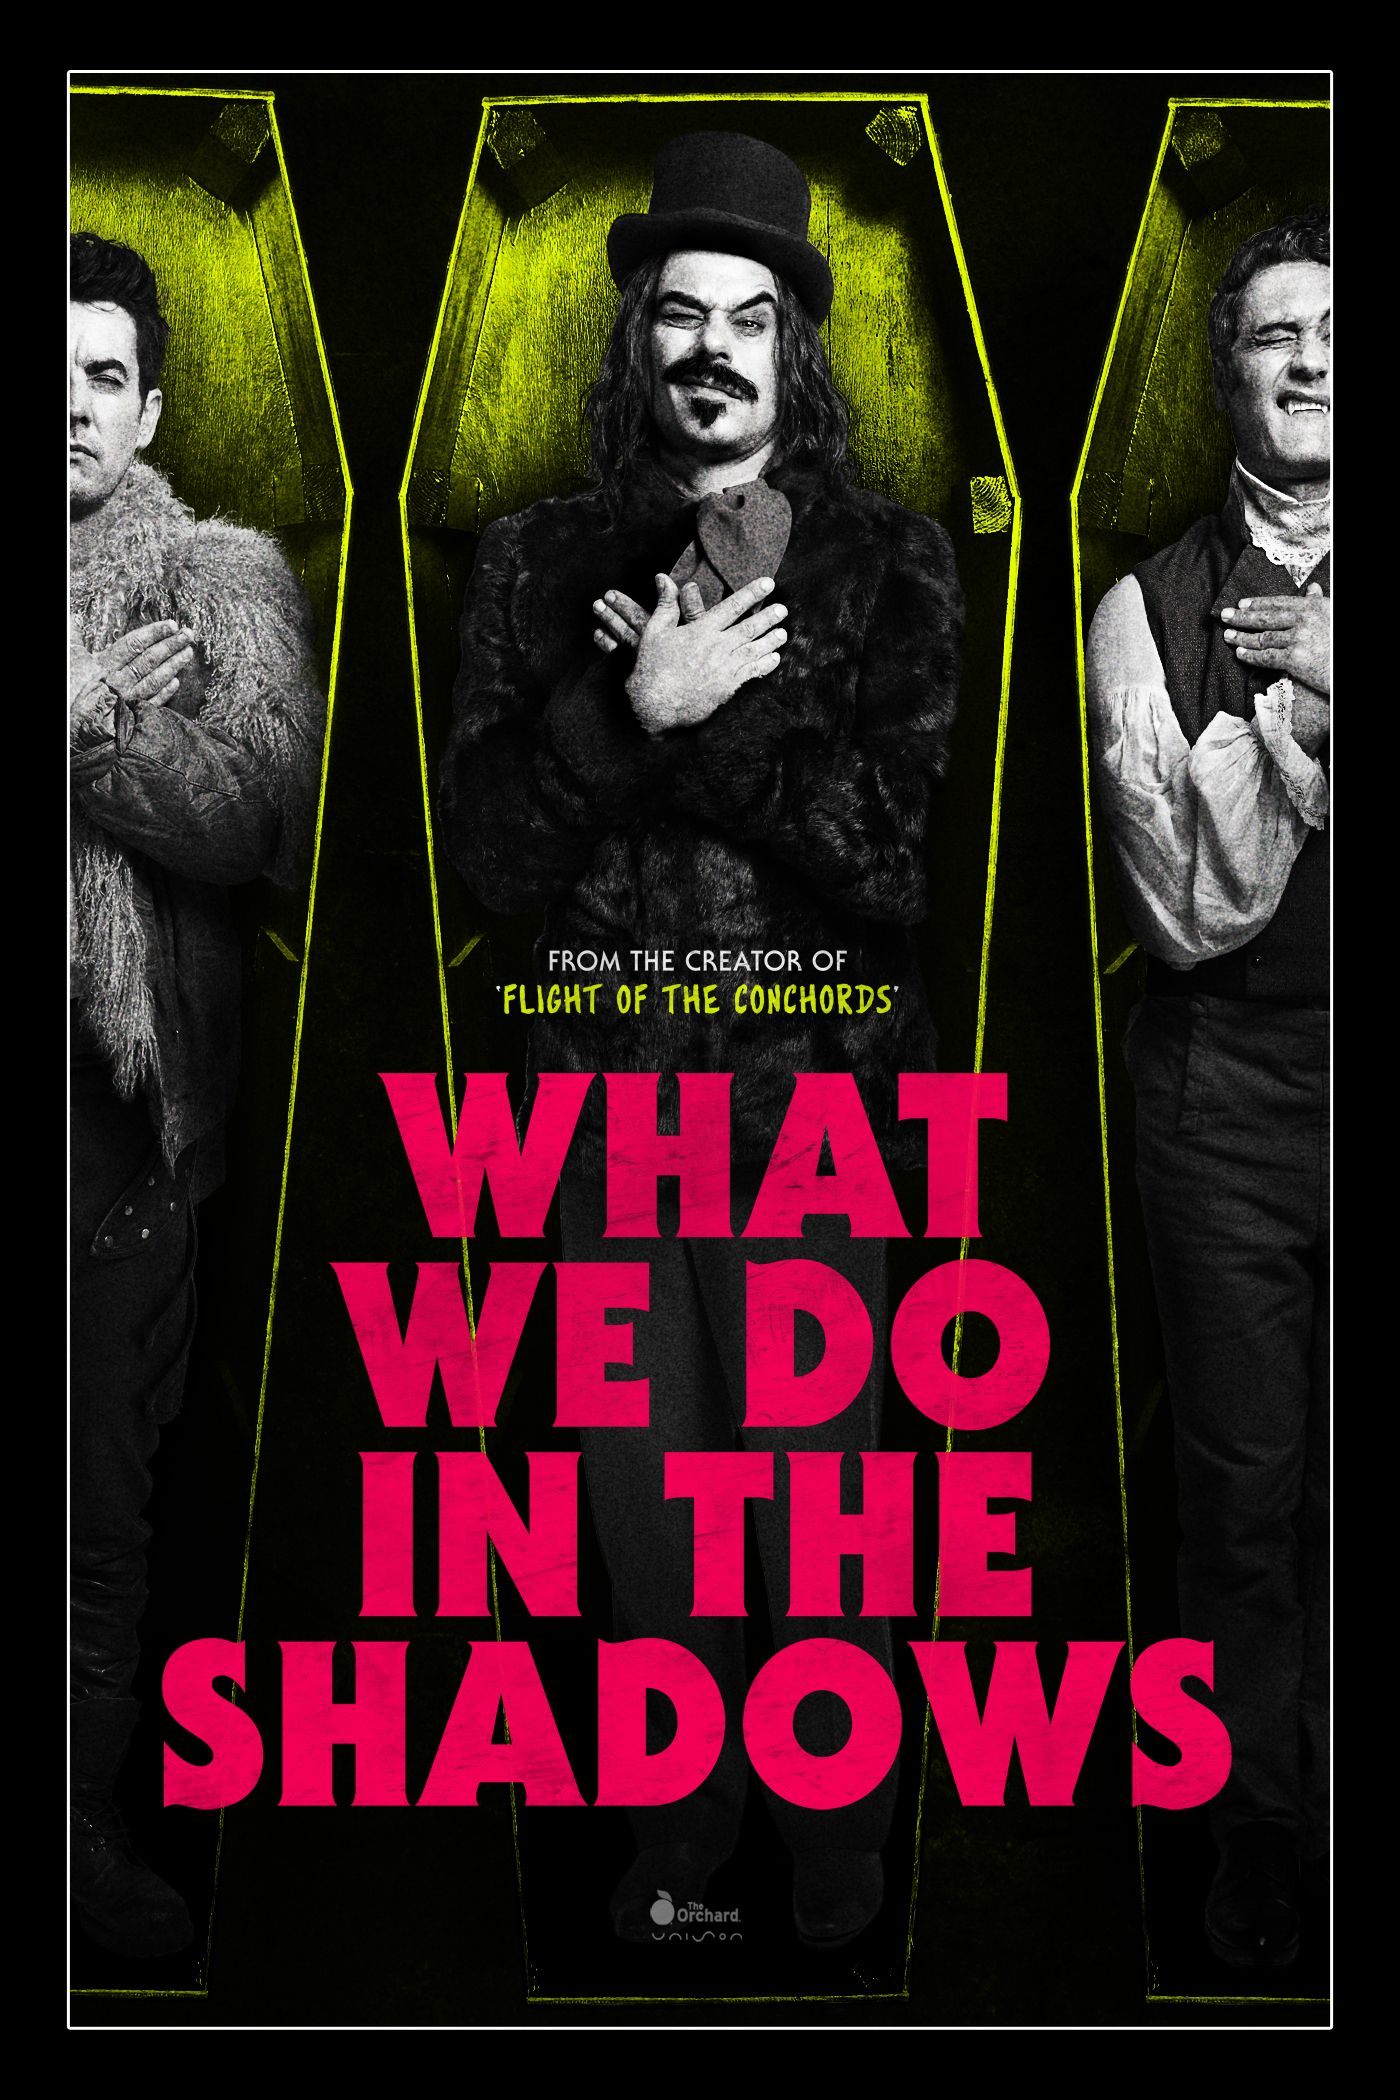 What We Do In the Shadows (2014) dir. Jemaine Clement, Taika Waititi